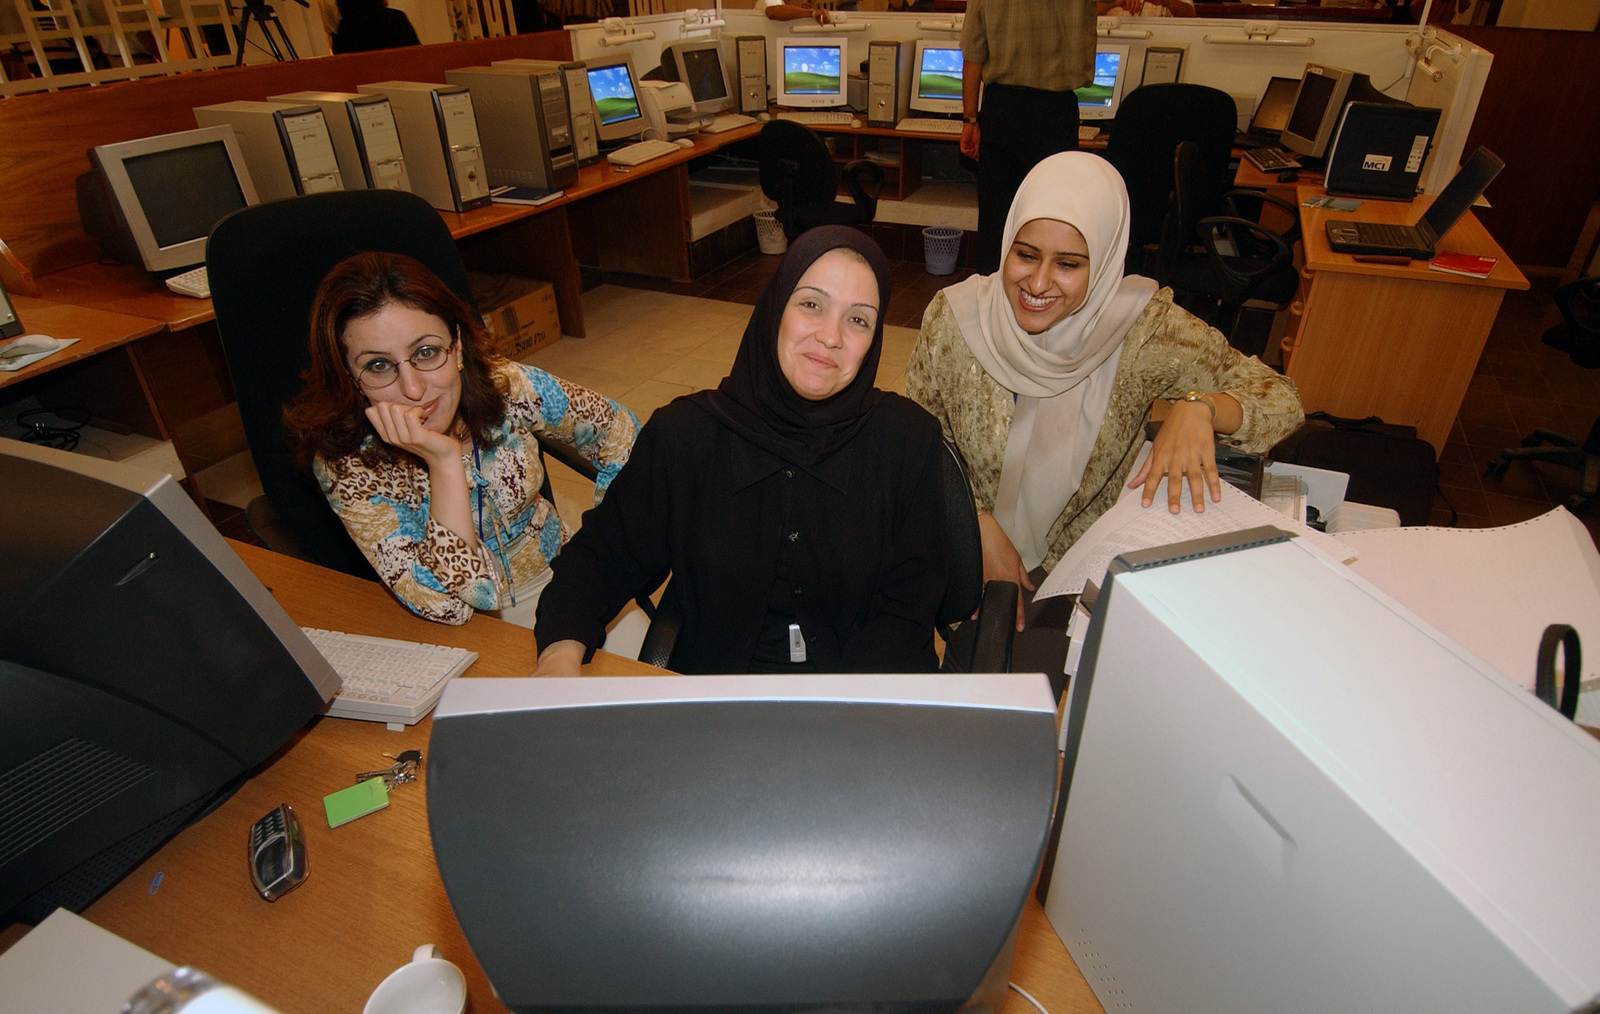 Three Female Employees Of The Iraq Stock Exchange Isx Pose For A Candid Photograph While